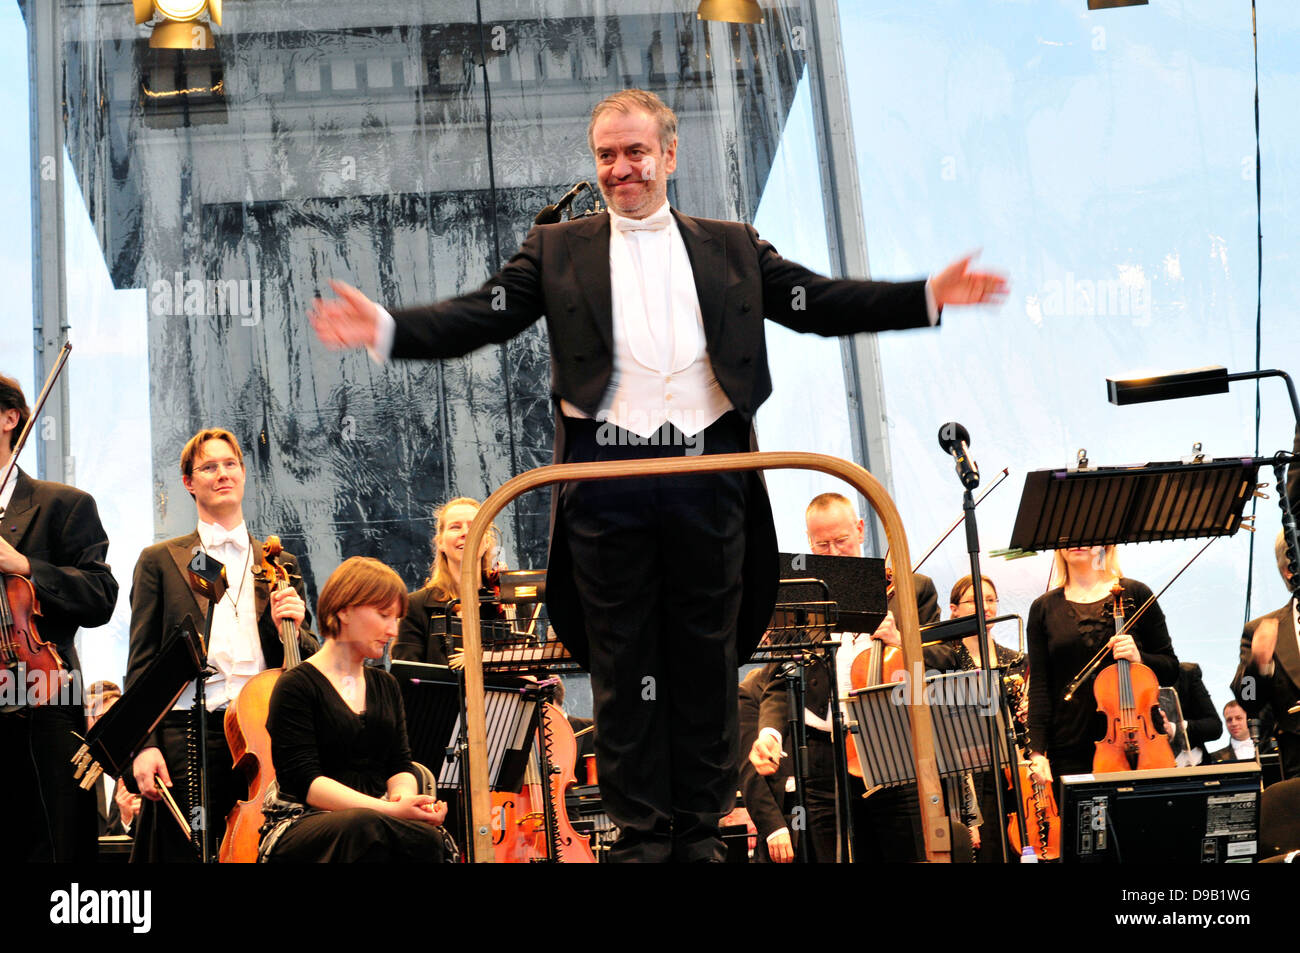 The principal conductor of the London symphony orchestra, Valery Gergiev  acknowledges the audience. Trafalgar Square, - Stock Image